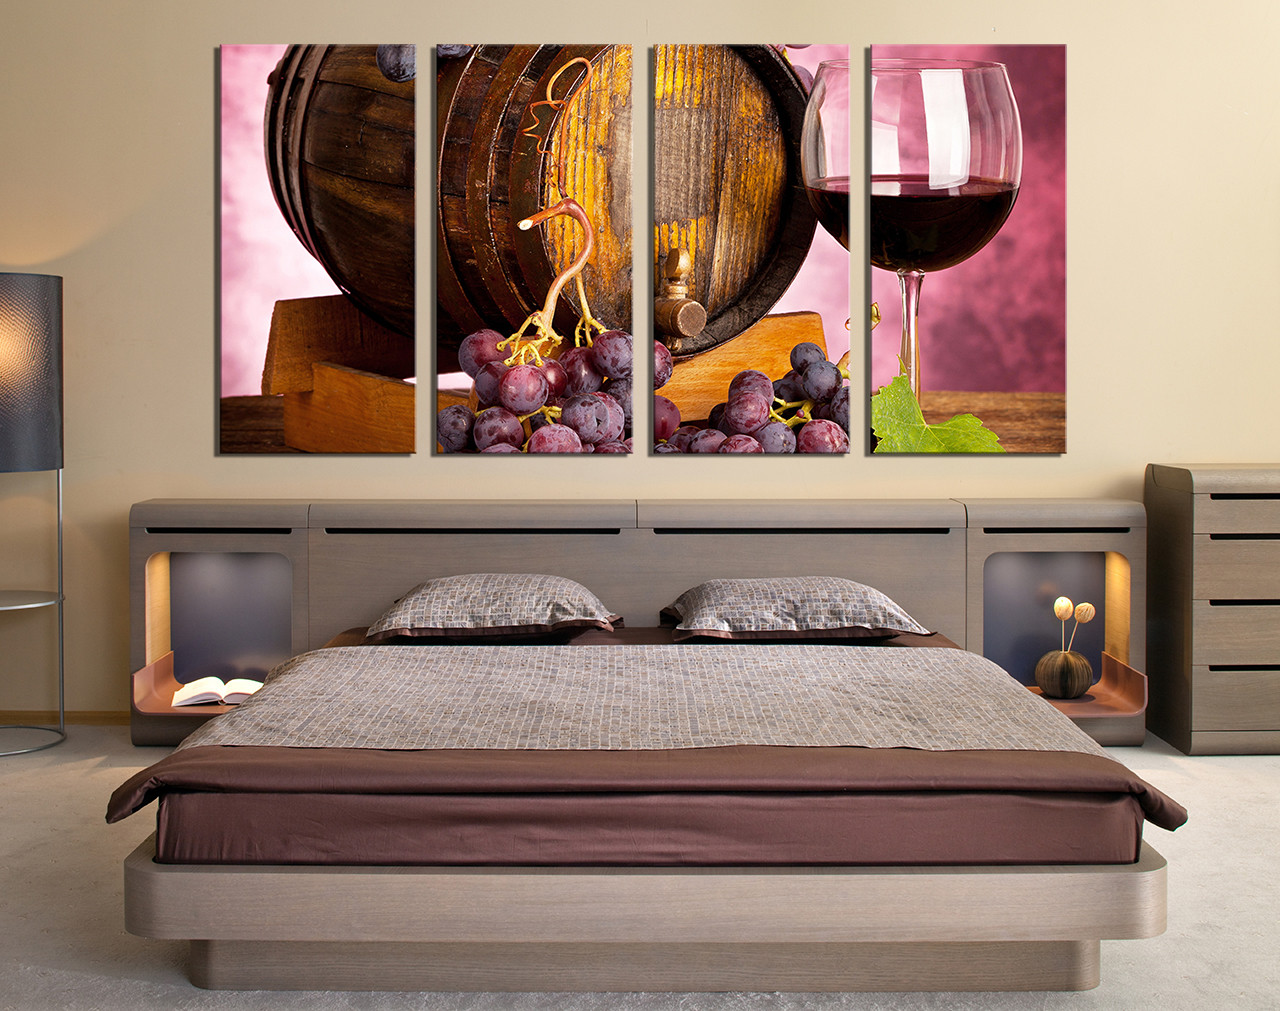 4 Piece Canvas Wall Art, Bedroom Wall Decor, Kitchen Multi Panel Art, Wine